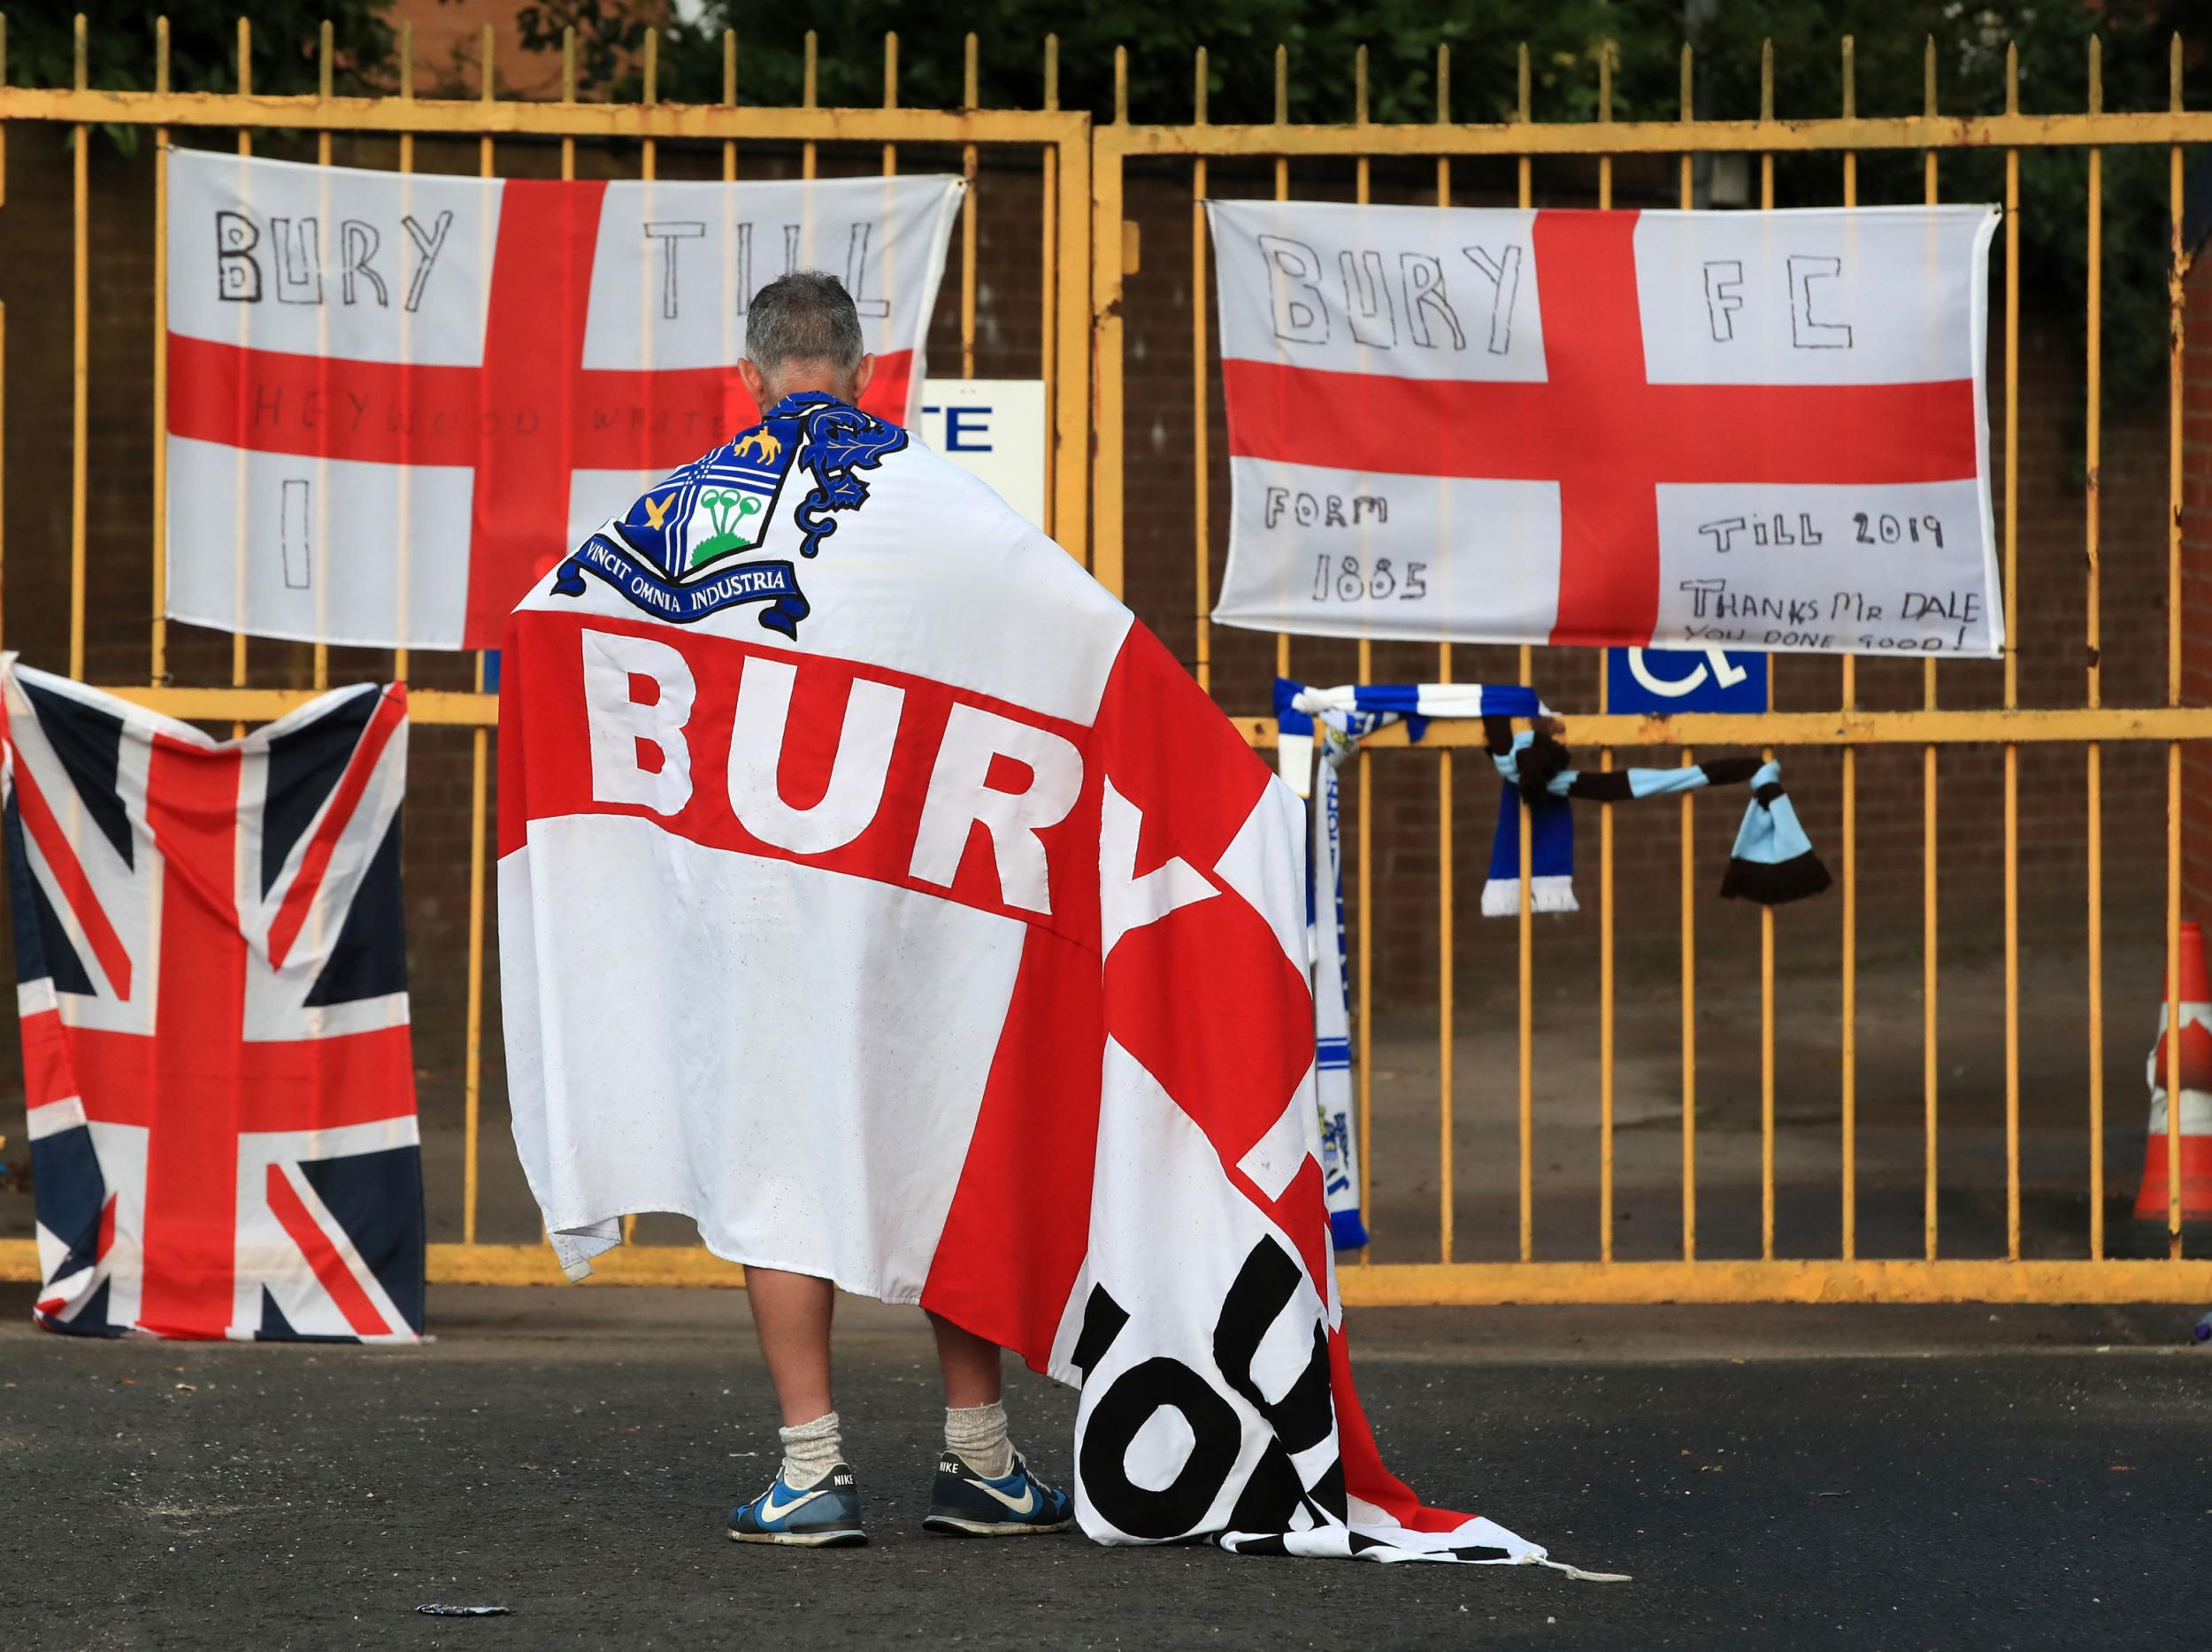 The scandalous neglect of Bury and Bolton Wanderers is nothing short of a national tragedy